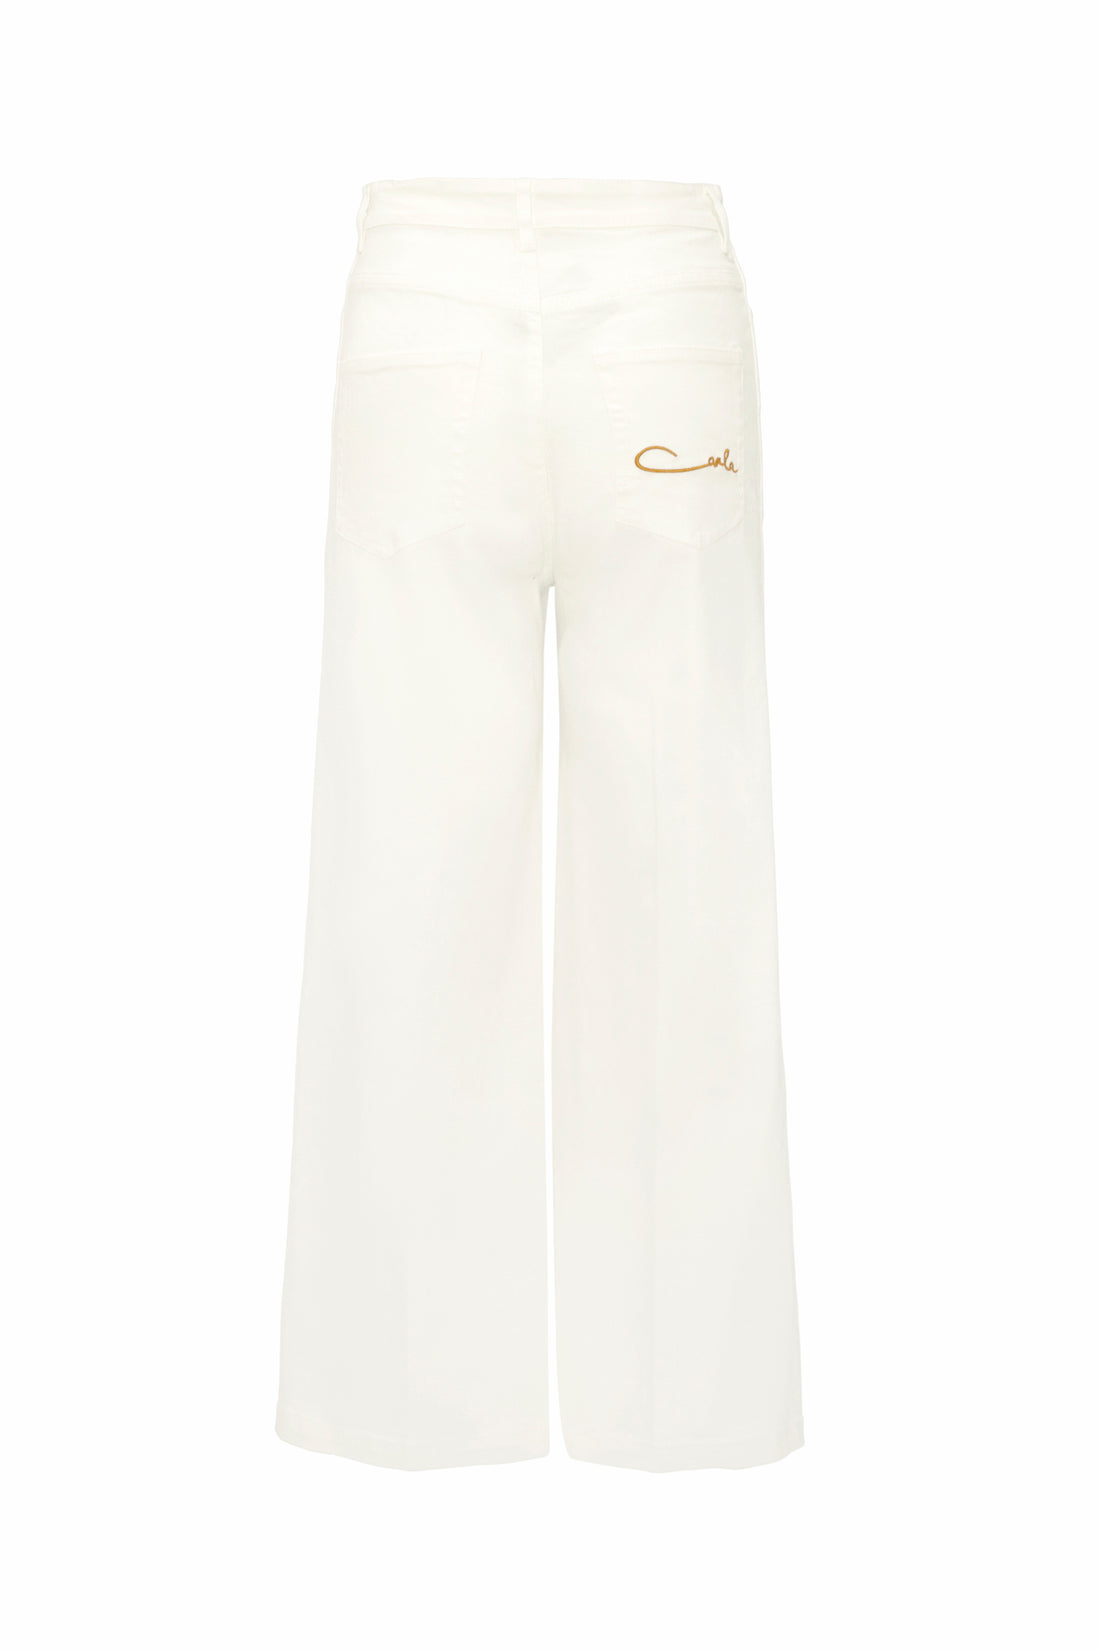 THE WHITE CARLA MUST HAVE YOU JEAN